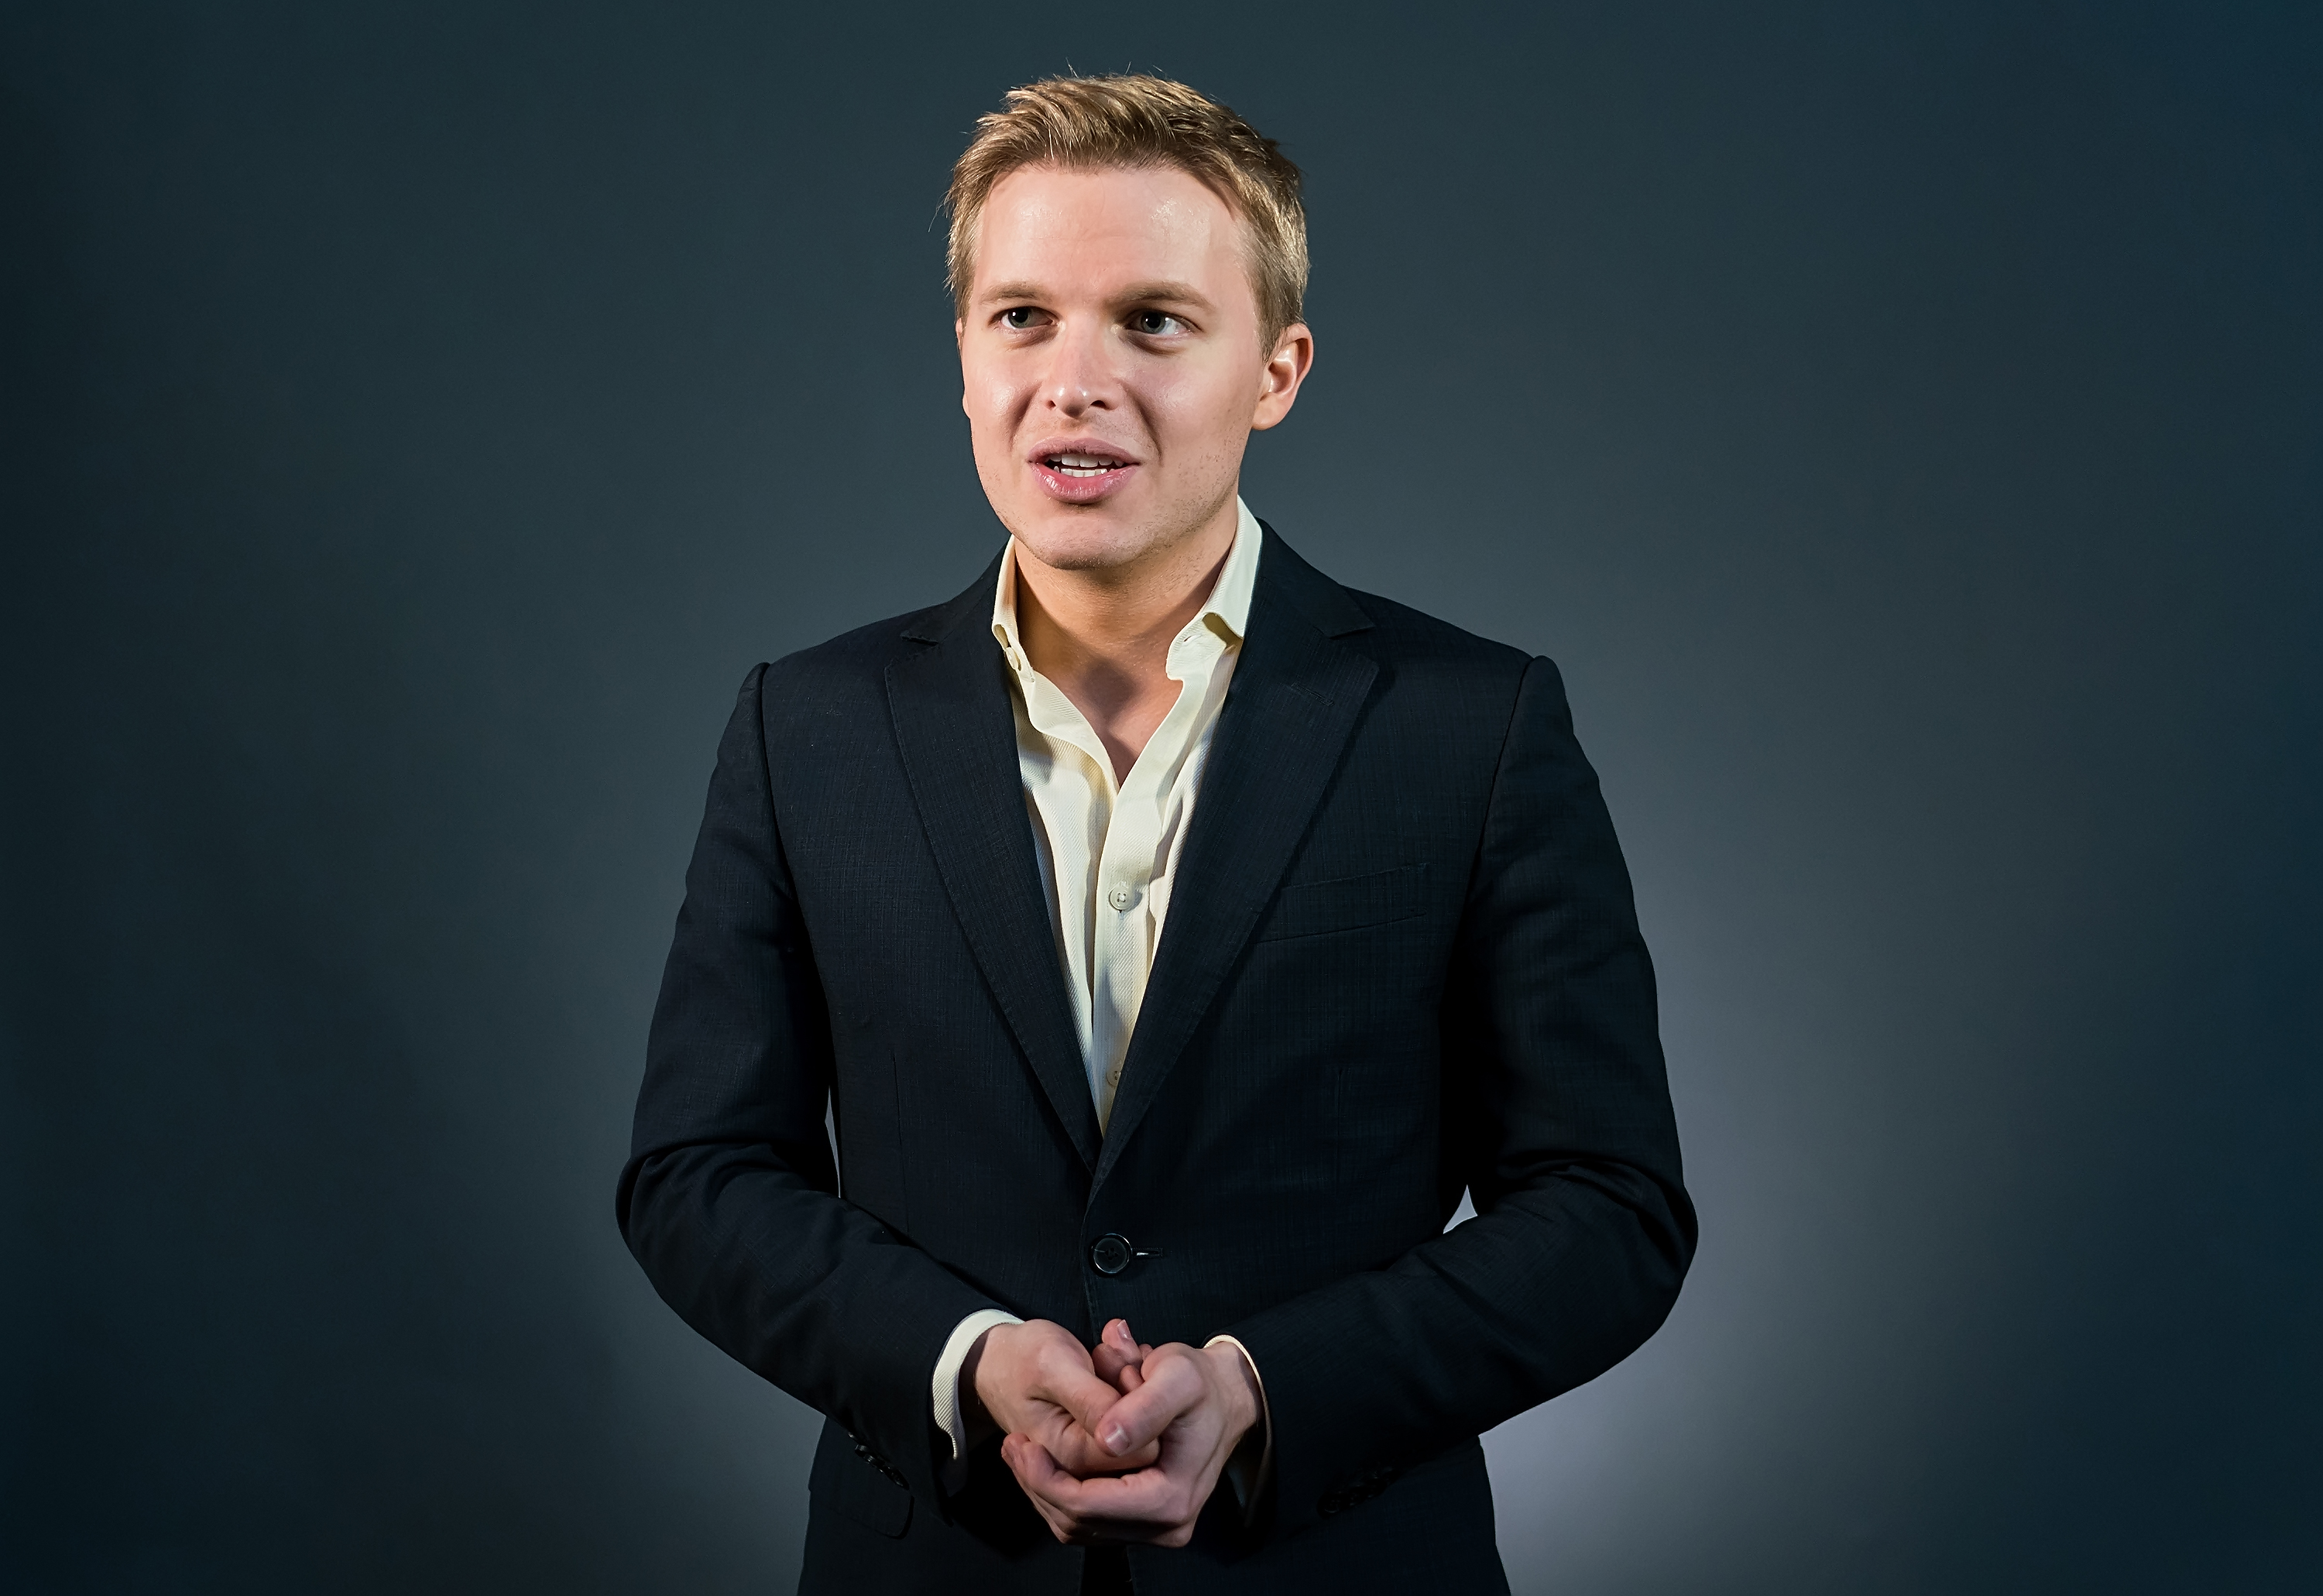 Activist, journalist, lawyer, Ronan Farrow attends the Forbes Under 30 Summit at Pennsylvania Convention Center in Philadelphia on Oct. 6, 2015.